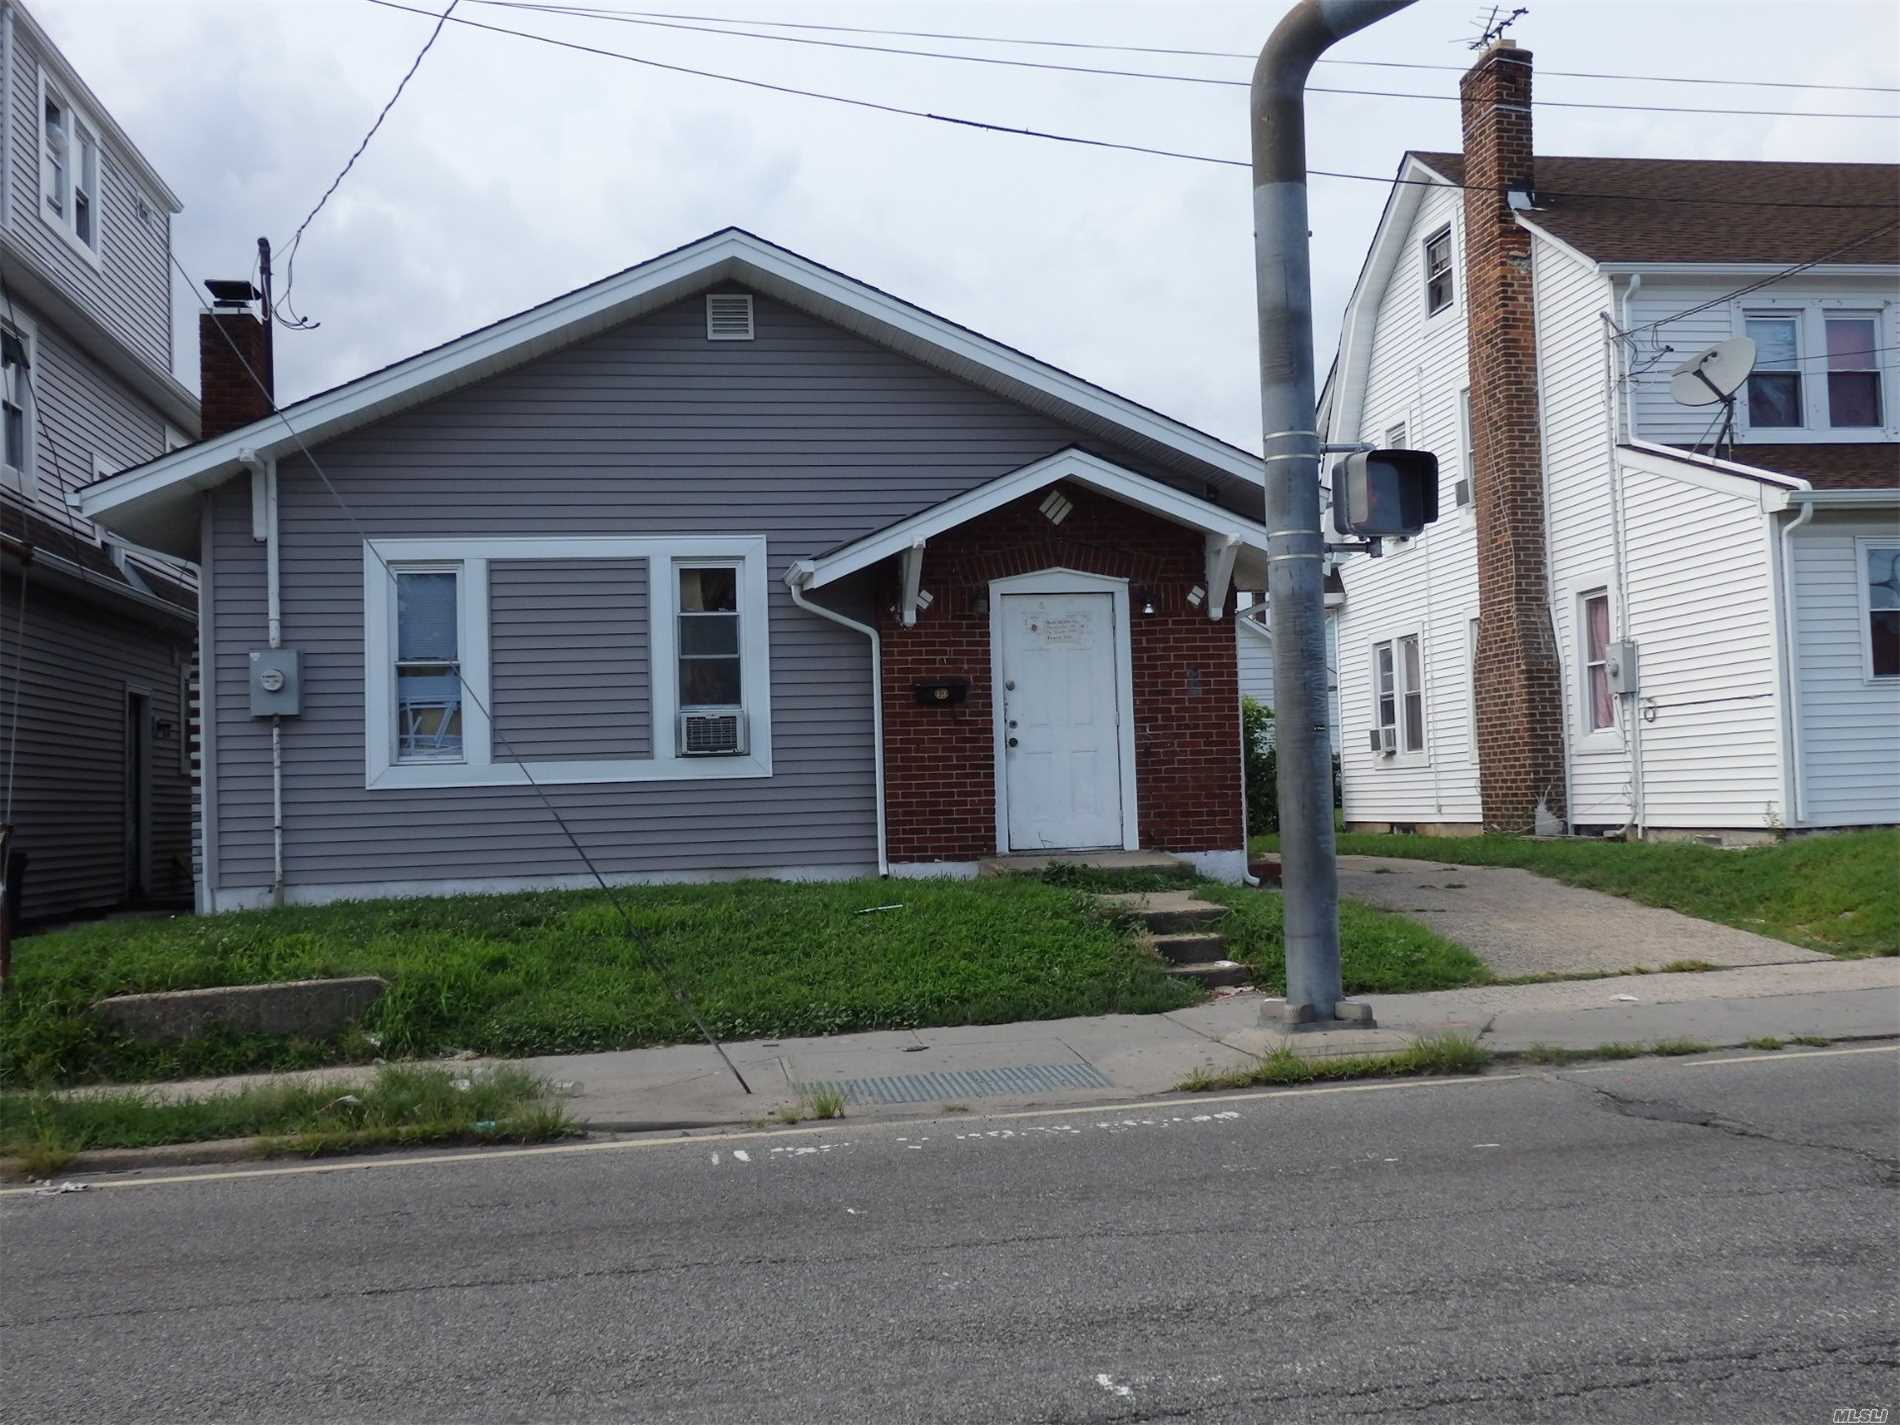 Investors And All Cash Buyers Only. Good Income Opportunity. Gross Rent Roll Over $27, 000. New Boiler, Hot Water Heater, Electrical, Siding And Roof. Being Sold Occupied With All Tenants In Place.Not An Reo, Not A Short Sale.Can Be Sold In Conjunction With 497 Fulton And 503 Fulton